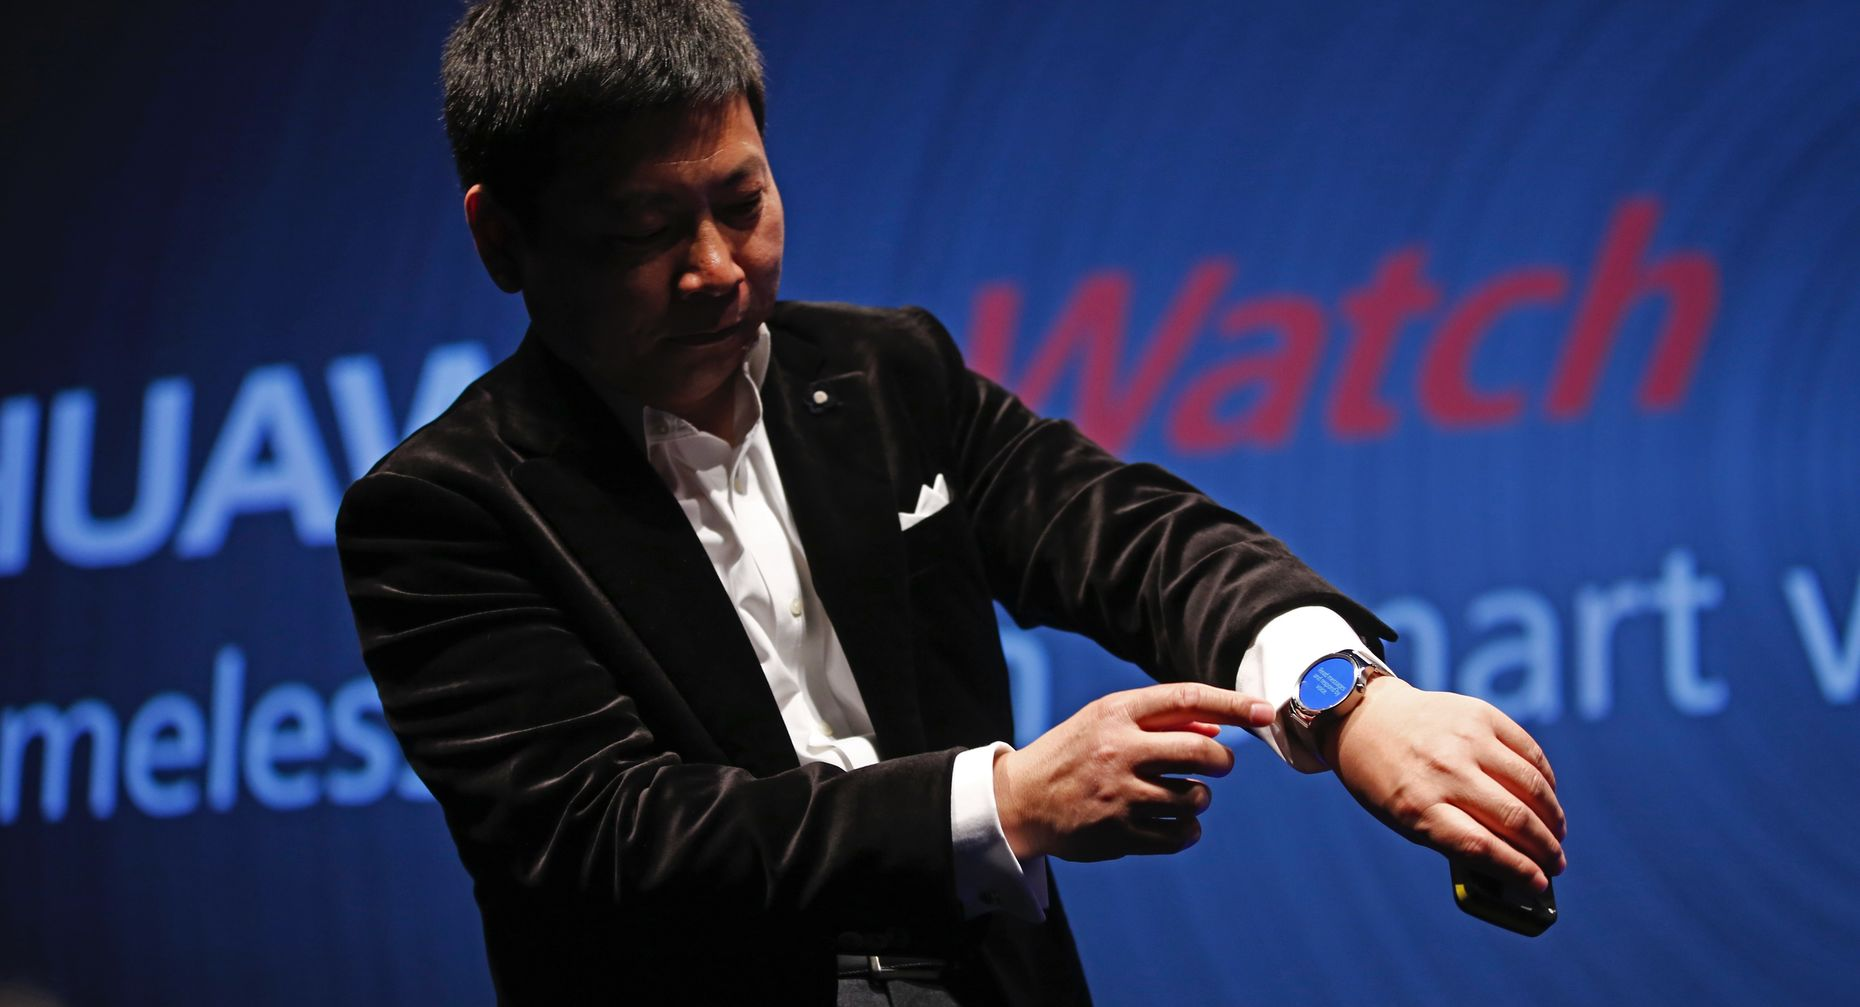 Huawei device group head Richard Yu with the smartwatch. Photo by Bloomberg.